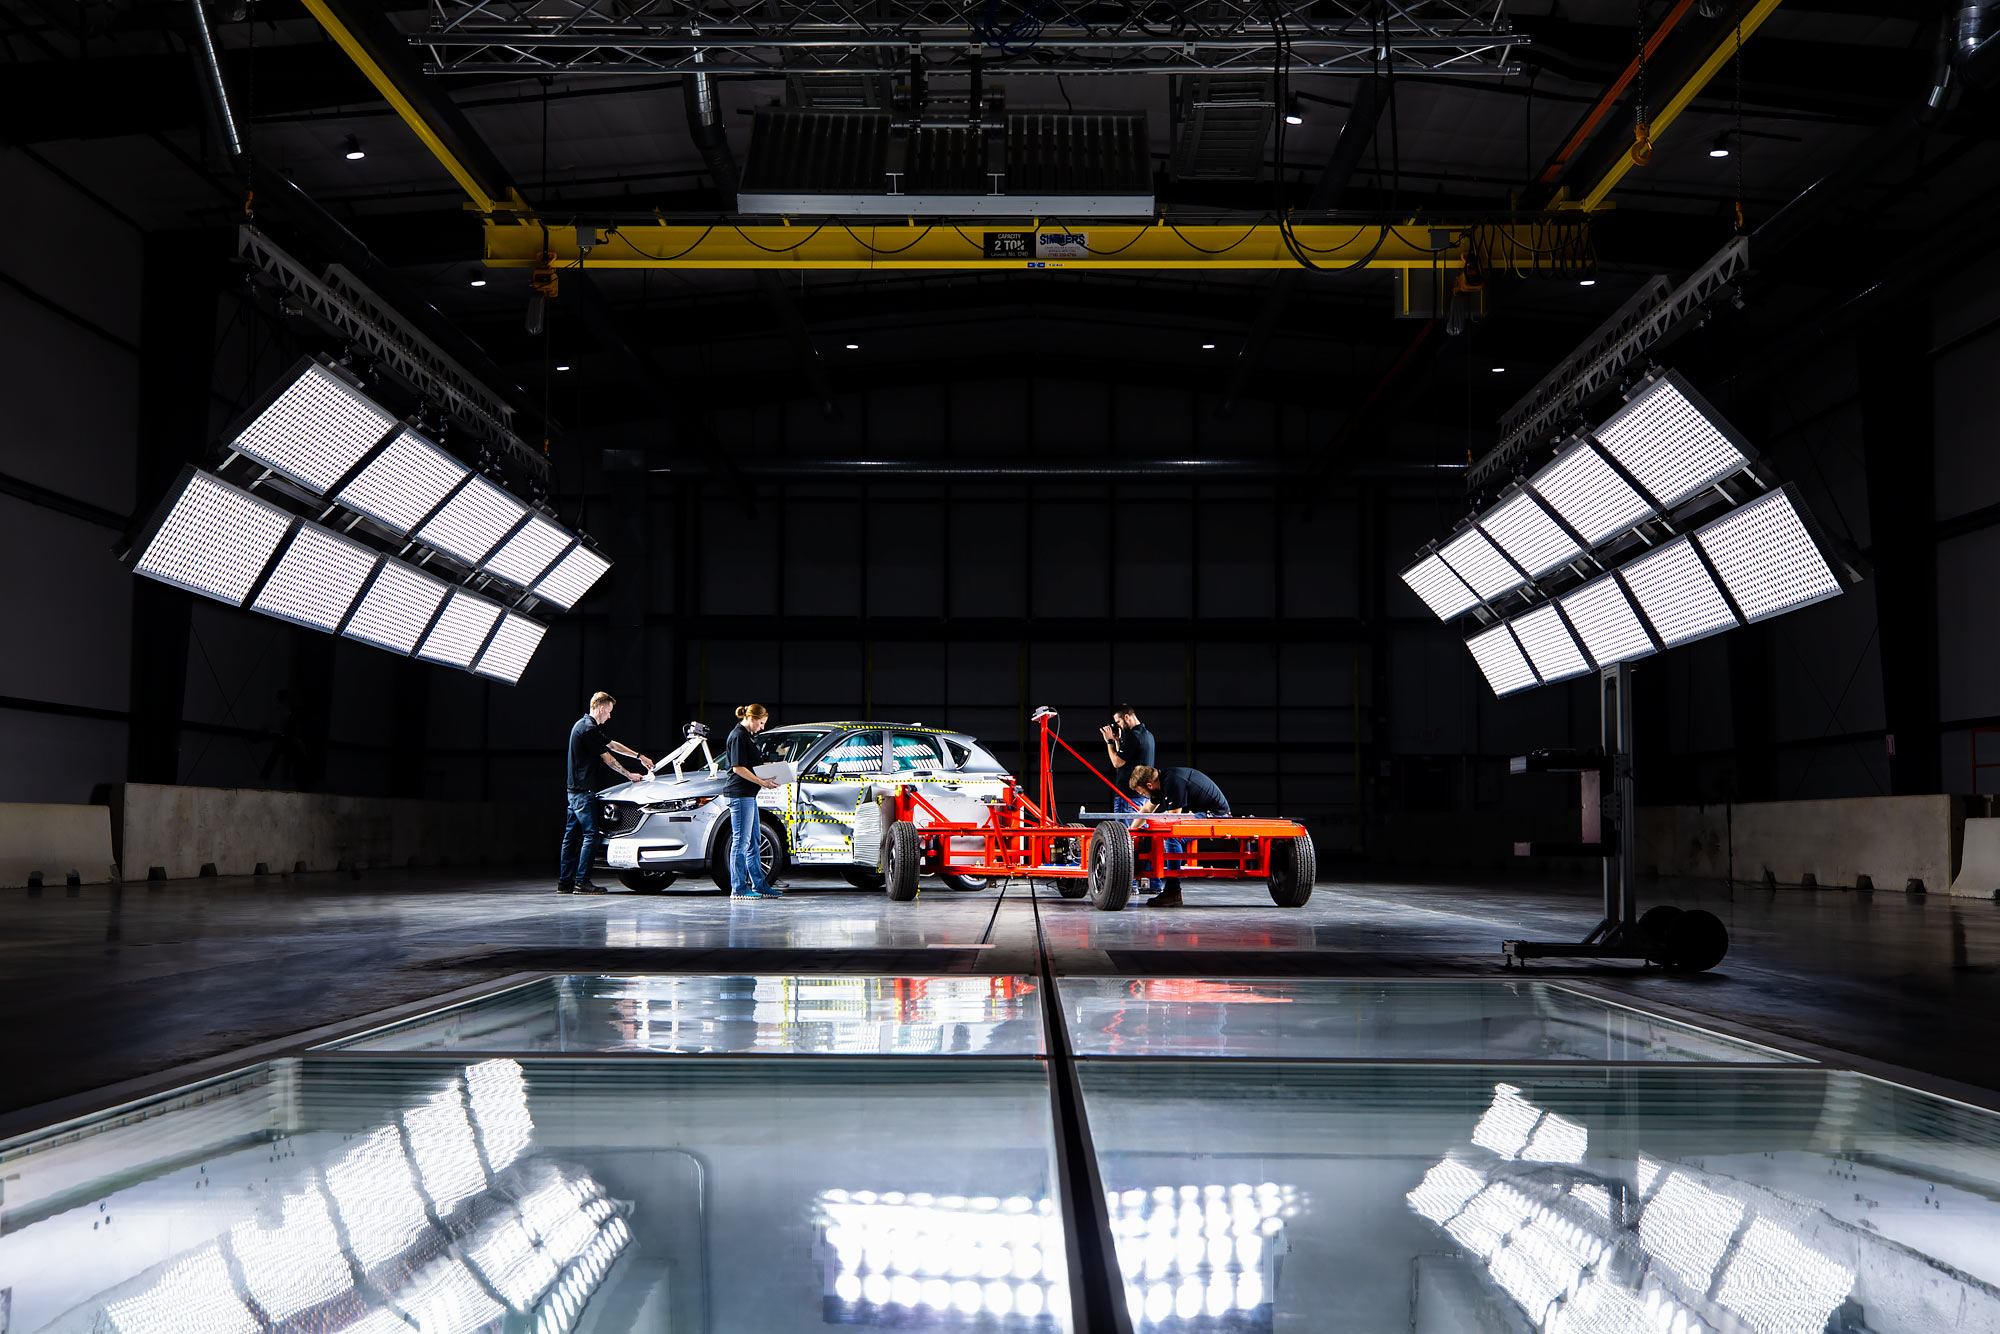 Technicians measure results of an automotive crash test |  Scott Gable industrial photographer